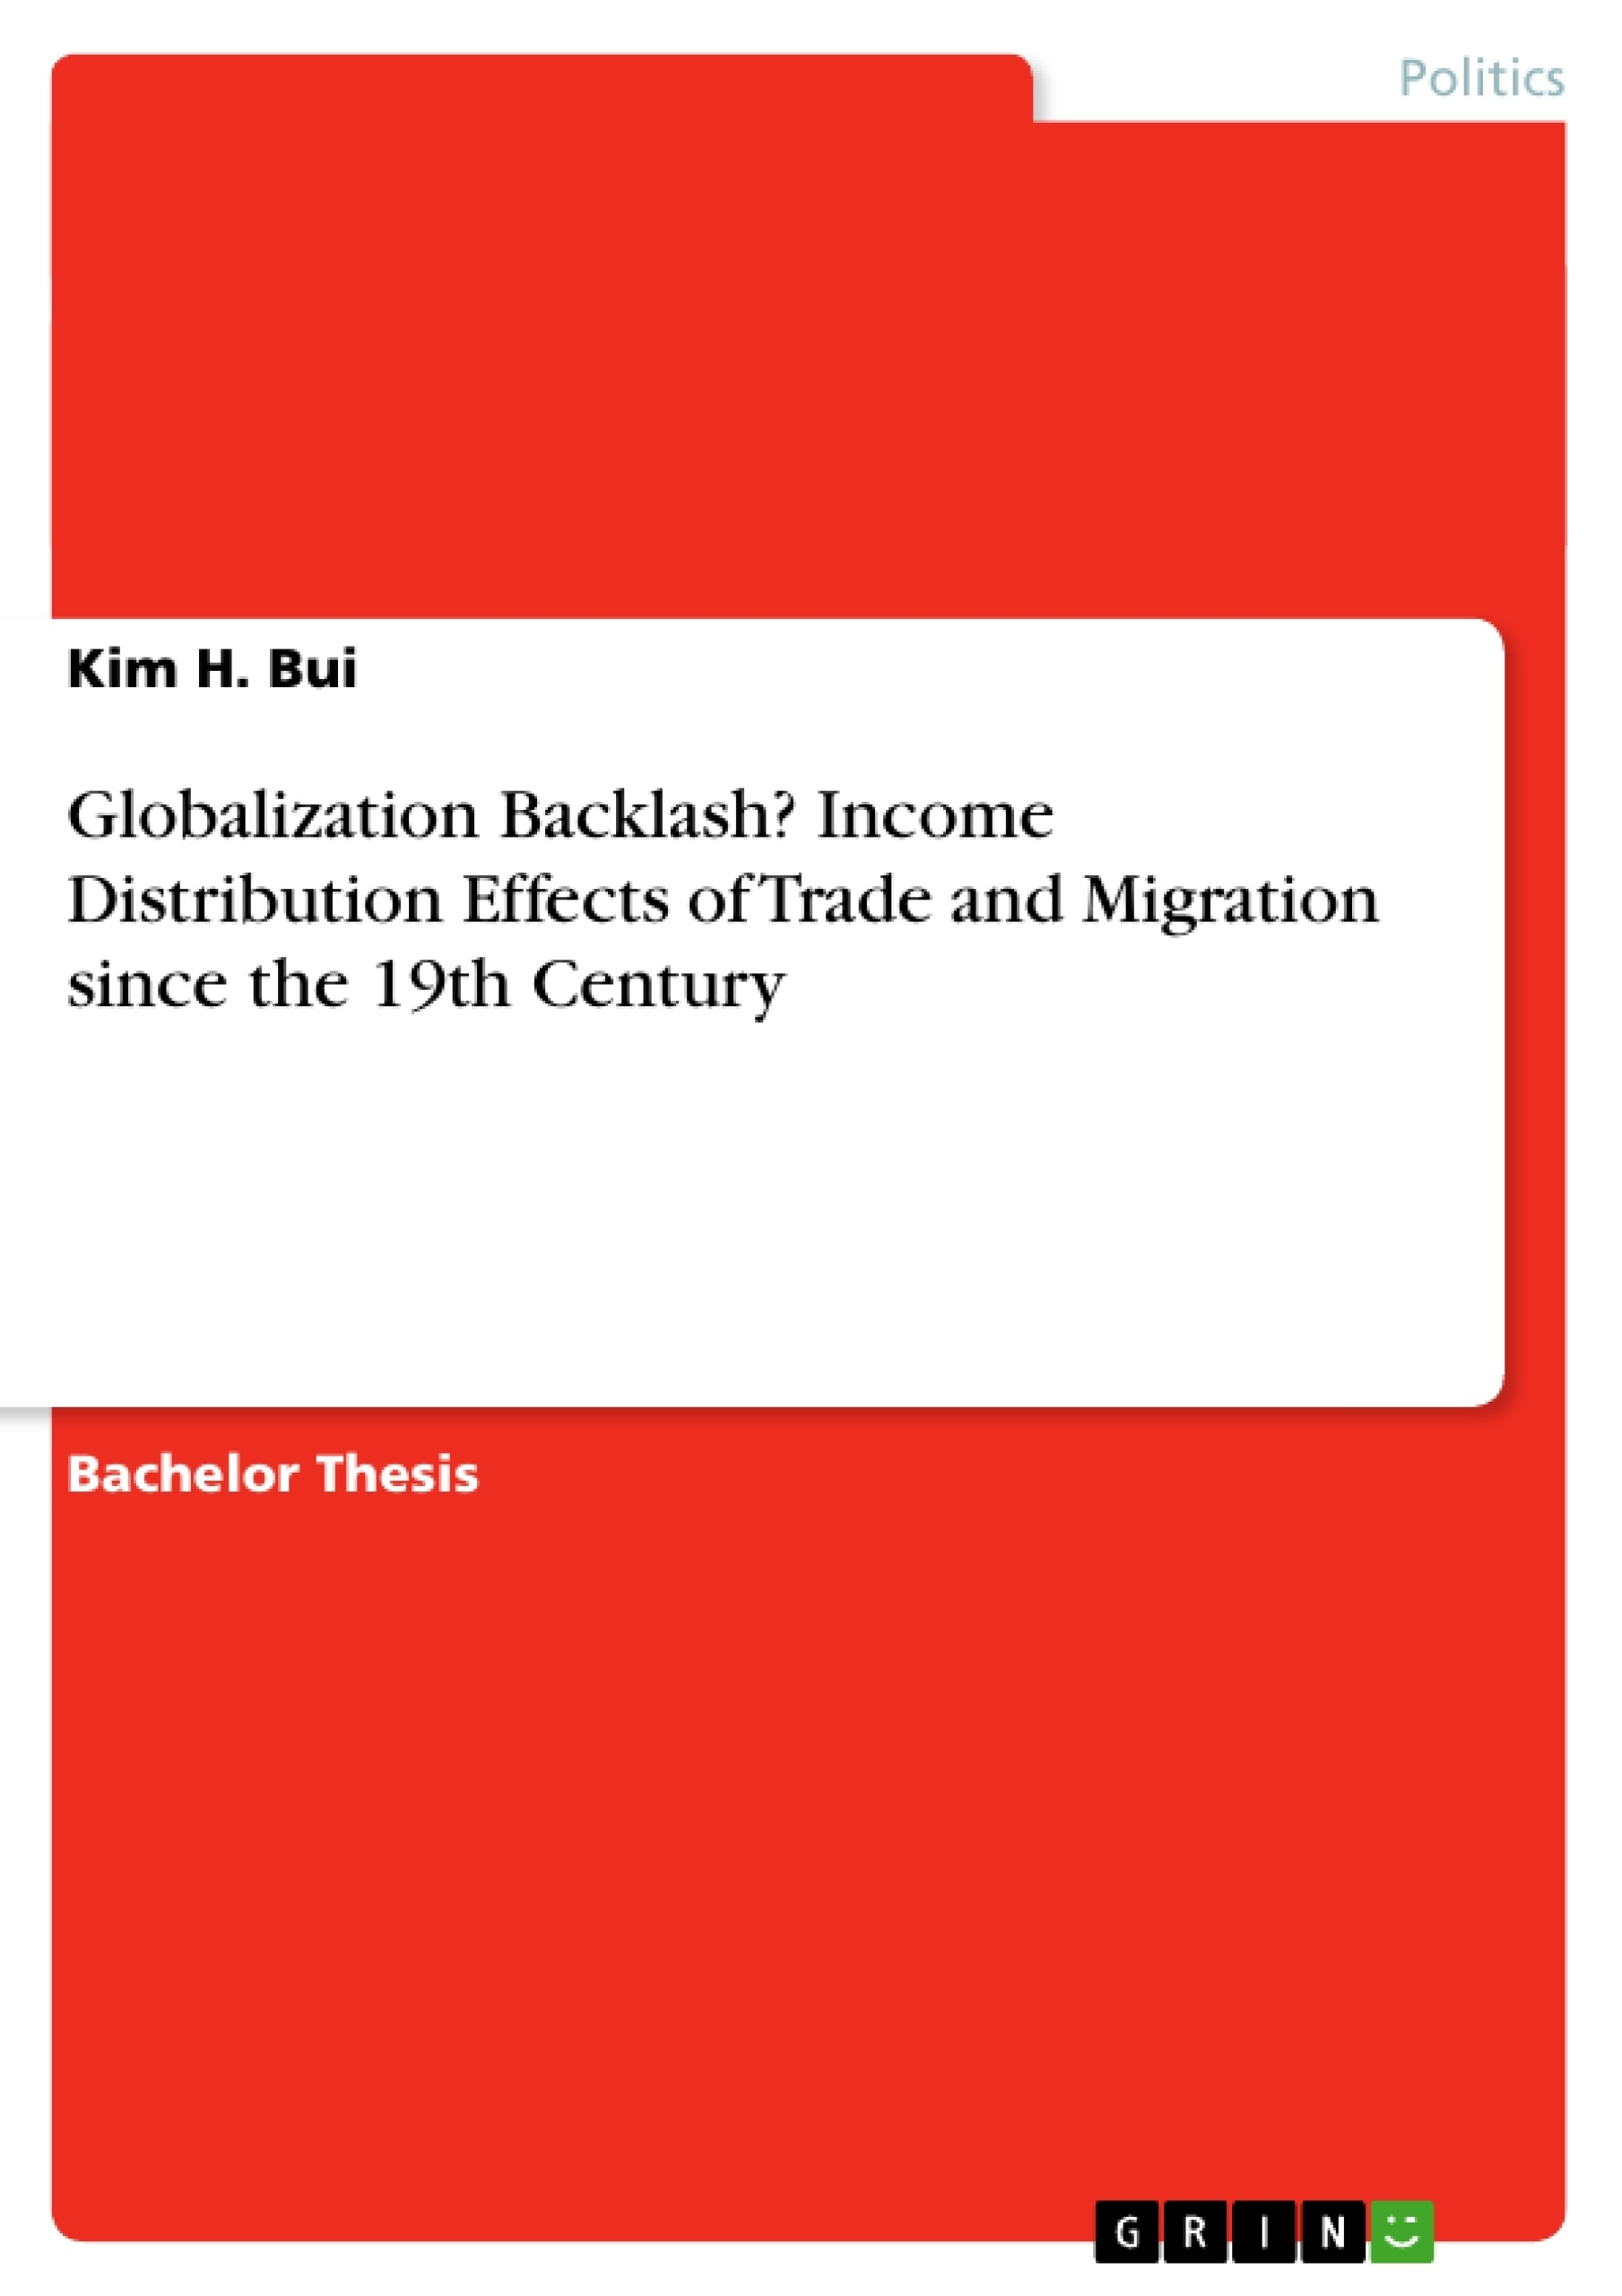 globalization backlash thesis Globalization backlash income distribution effects of trade and migration since the 19th century by kim h bui, 9783656356196, available at book depository with free.